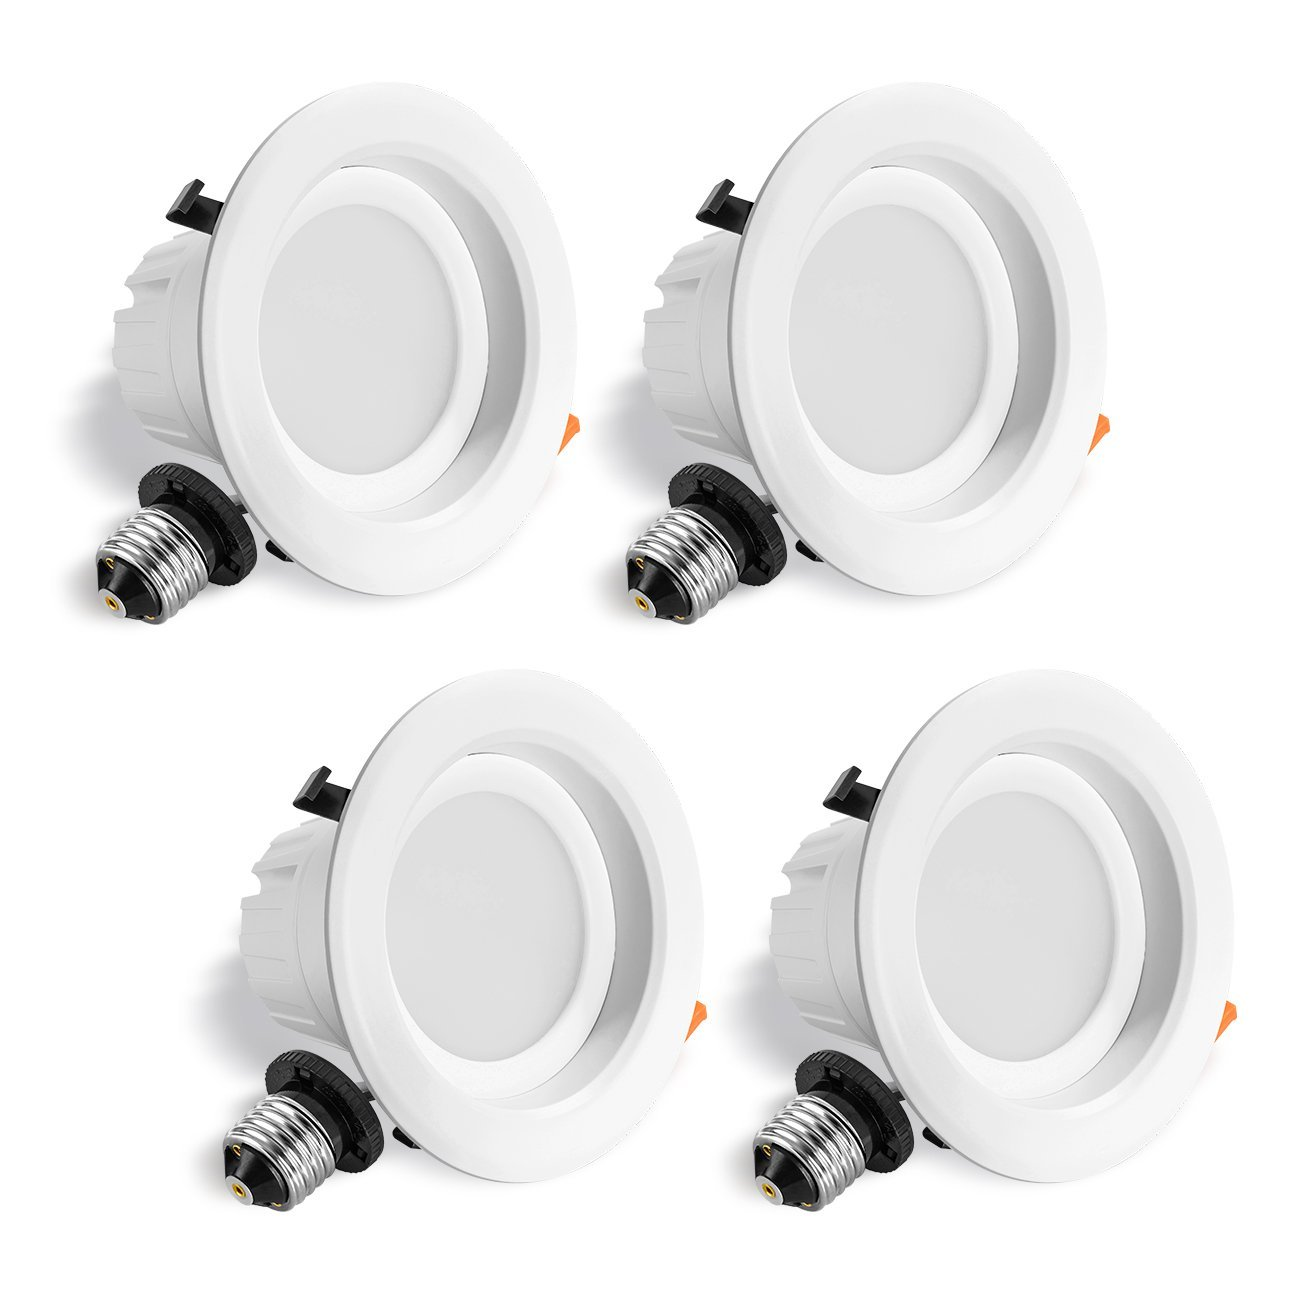 LVWIT LED 4'' Retrofit Dimmable Downlight 5000K Daylight 750 Lumens, Equivalent 65W, 5 Year Warranty(4 Pack) by LVWIT (Image #1)